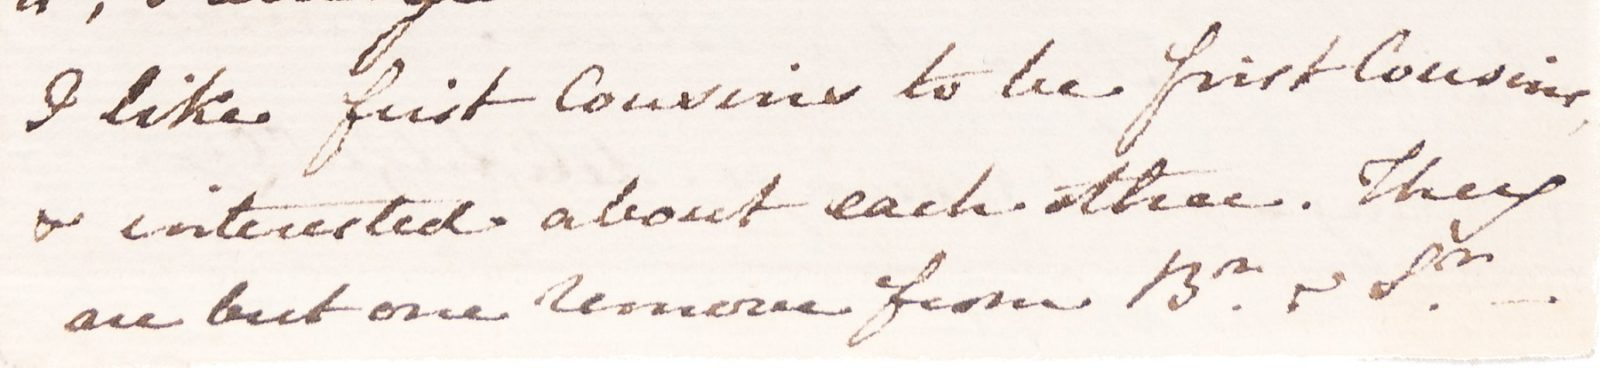 Extract from letter: 'I like first cousins to be first cousins'